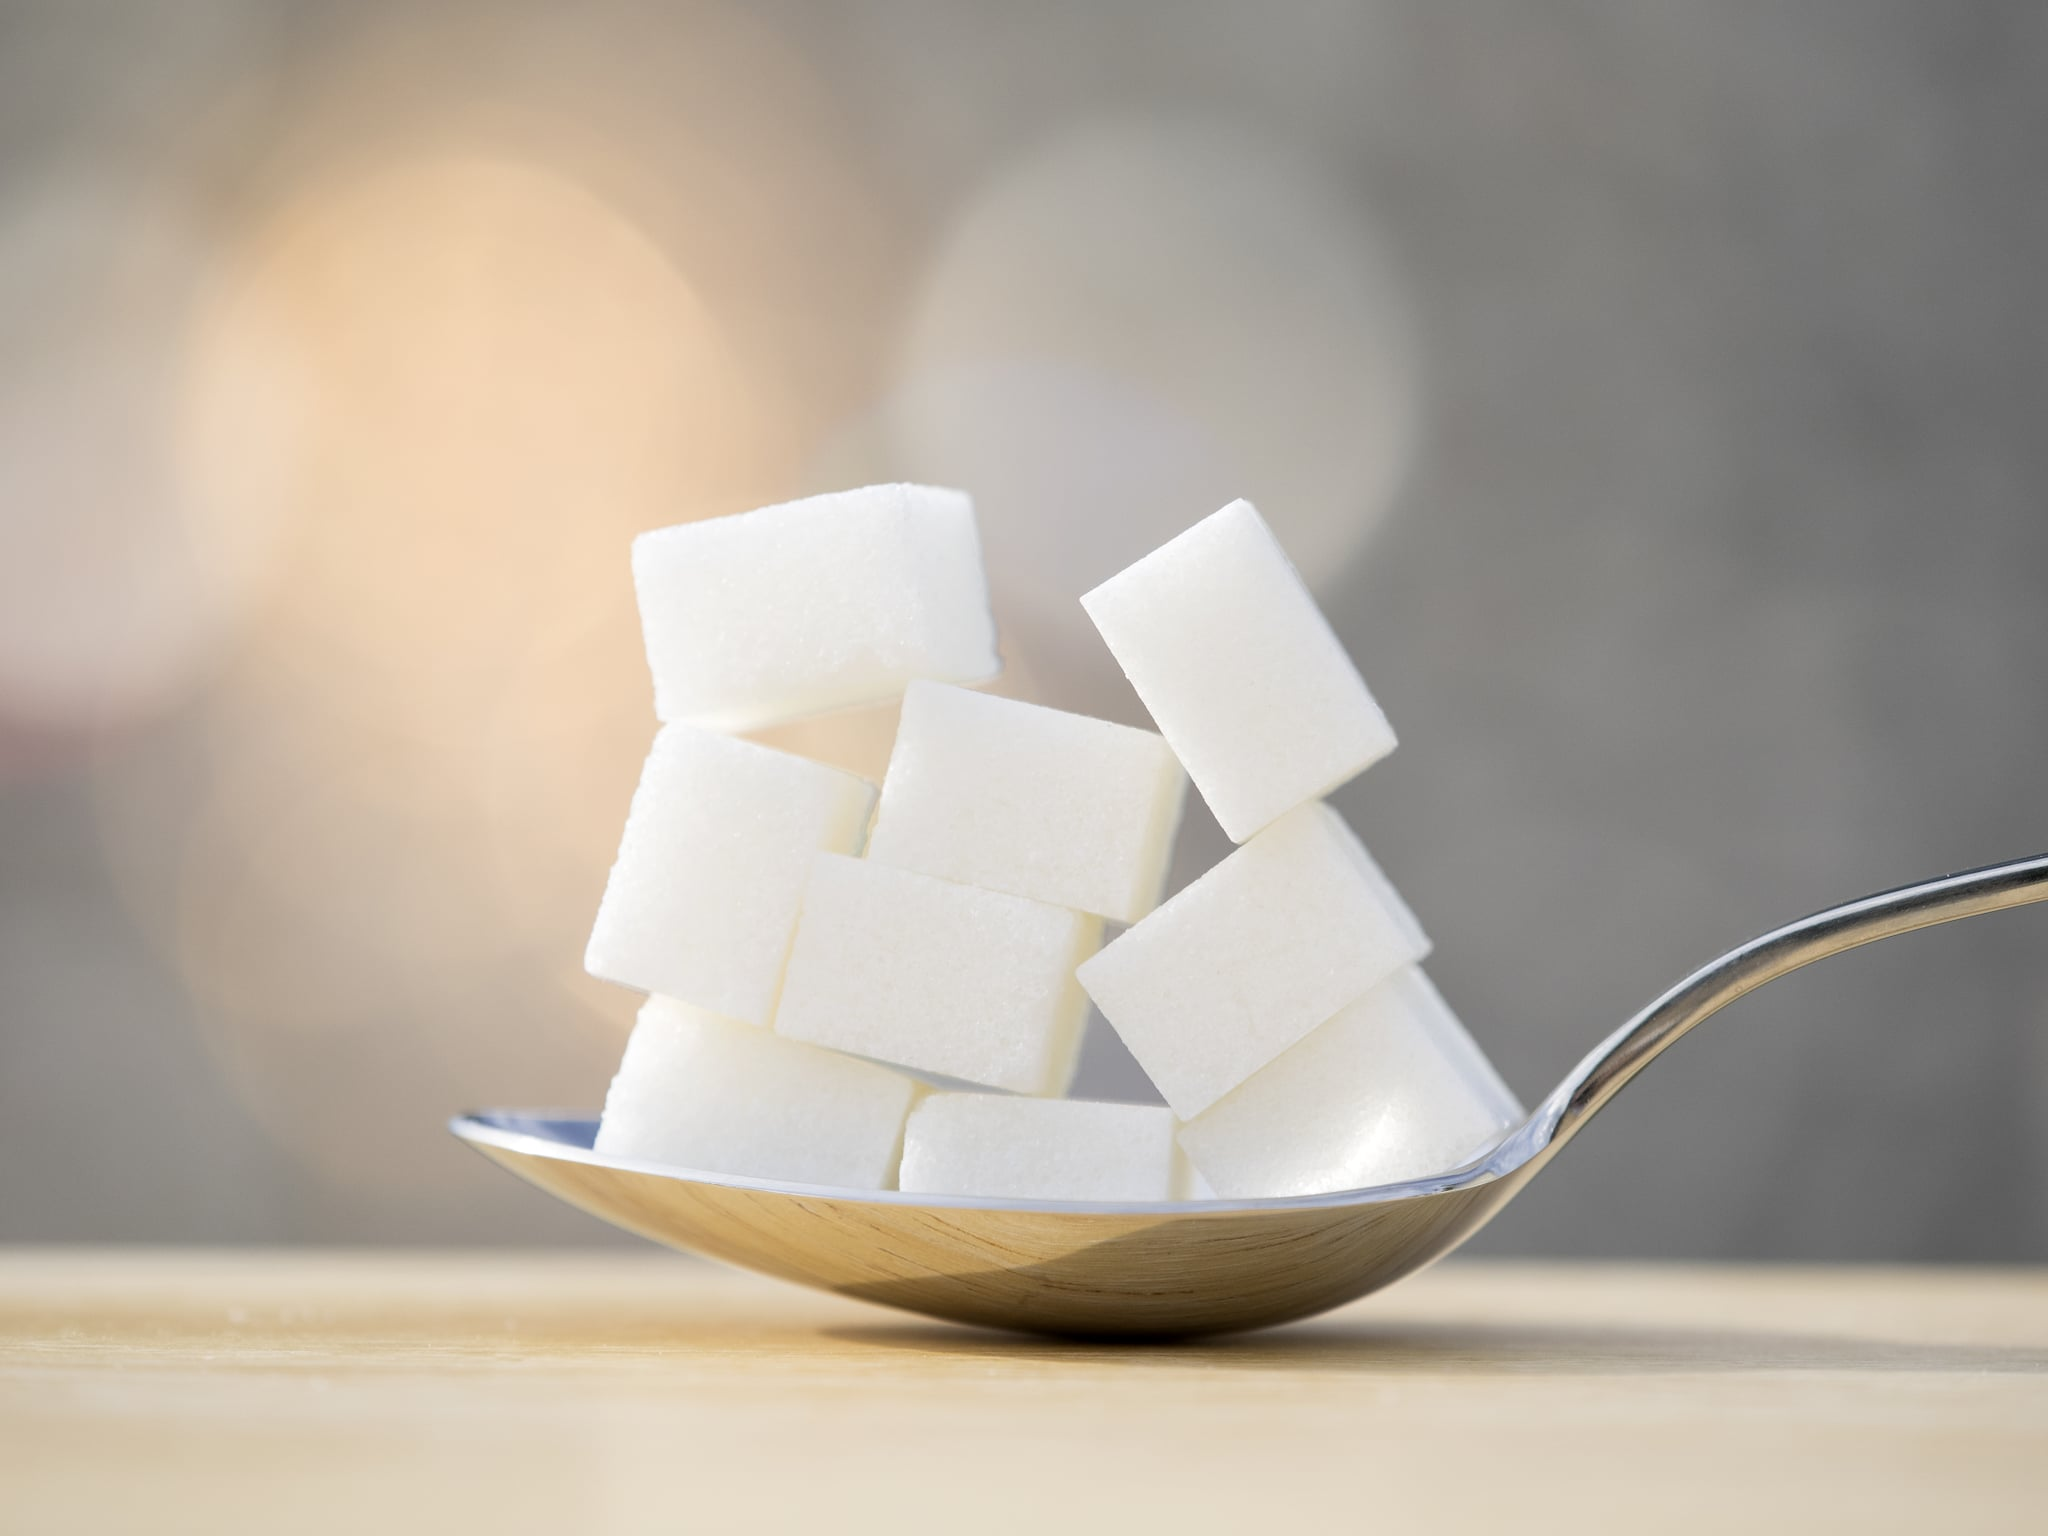 Added Sugars and Depression? There's a Link, According to This New Study